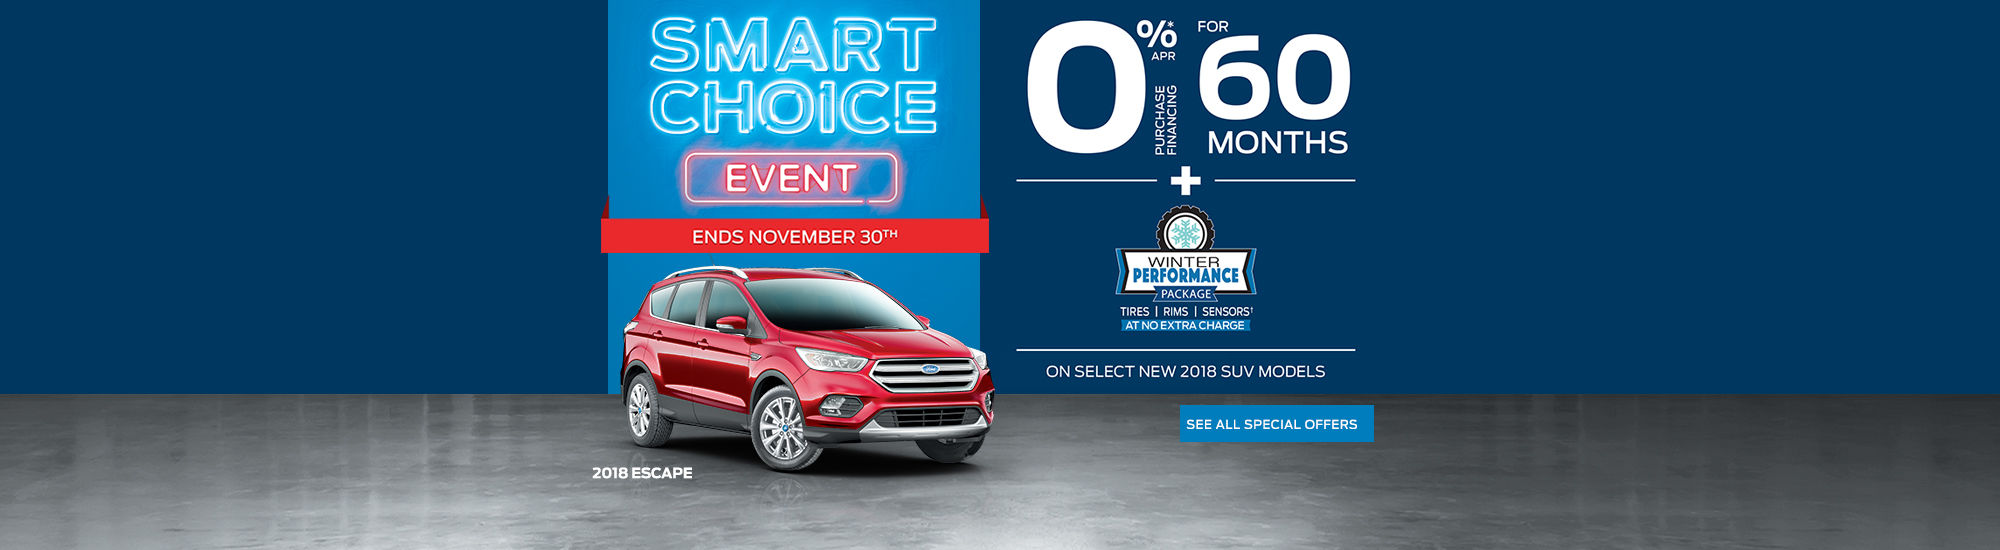 Ford-Smart choice event